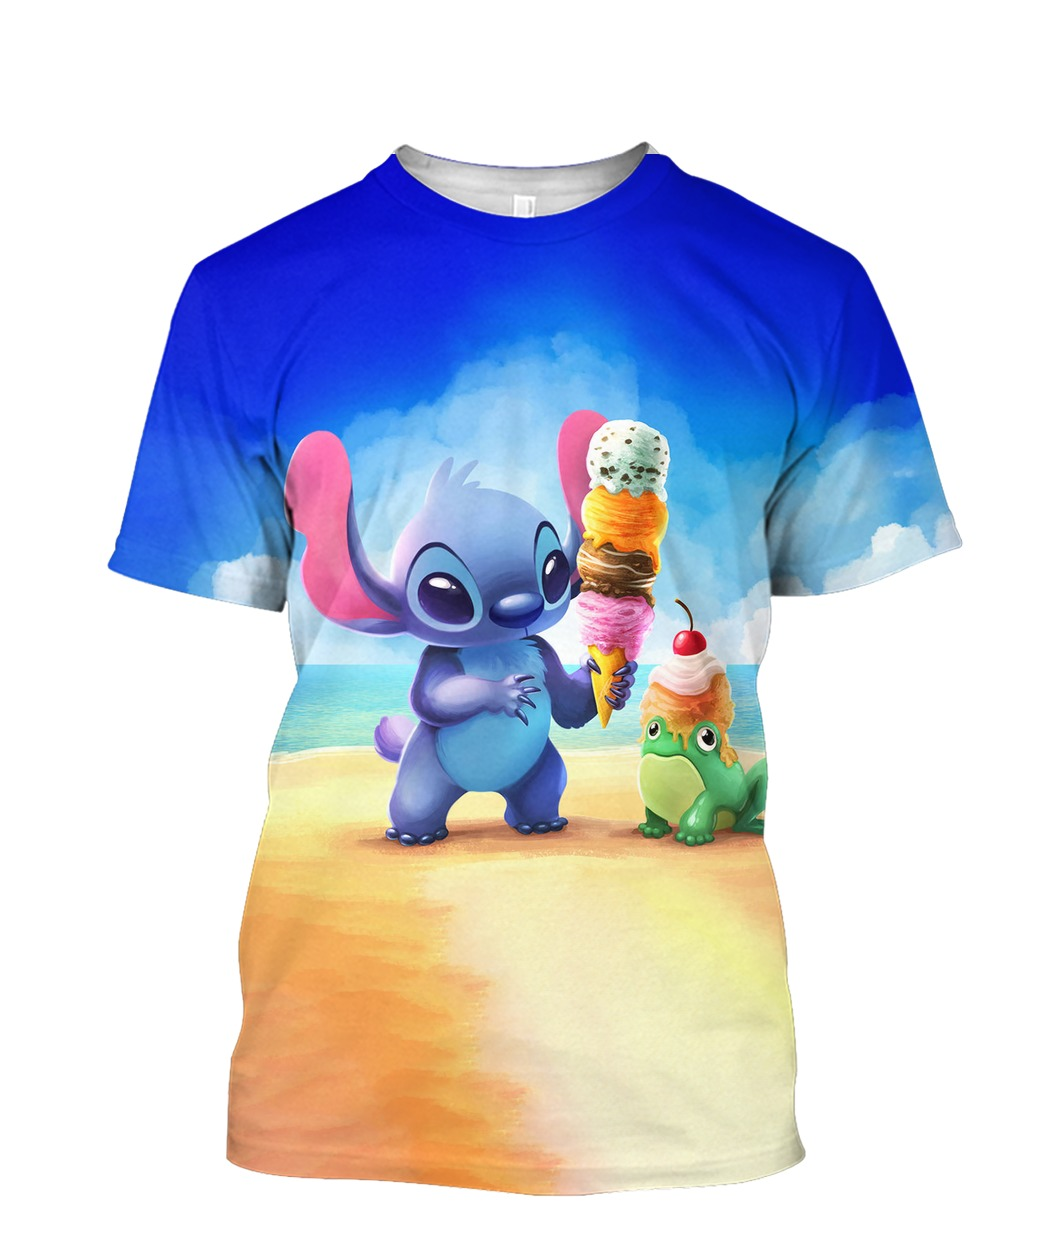 Stitch and ice-cream all over printed tshirt